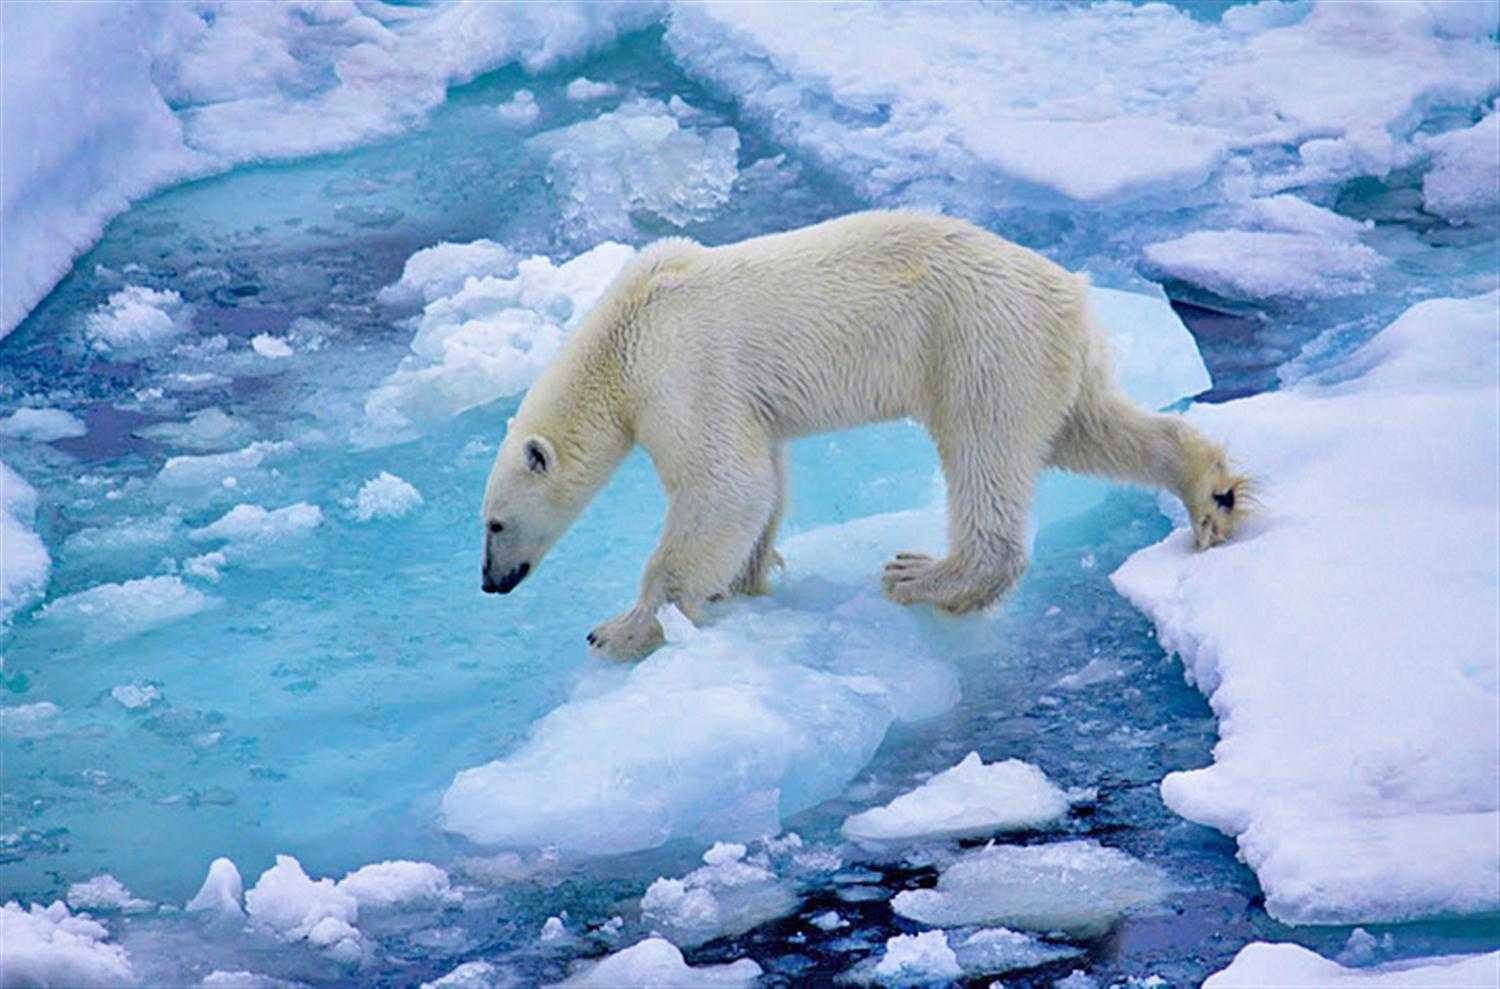 Polar Bear Wallpaper and Background Image   1500x989   ID ...